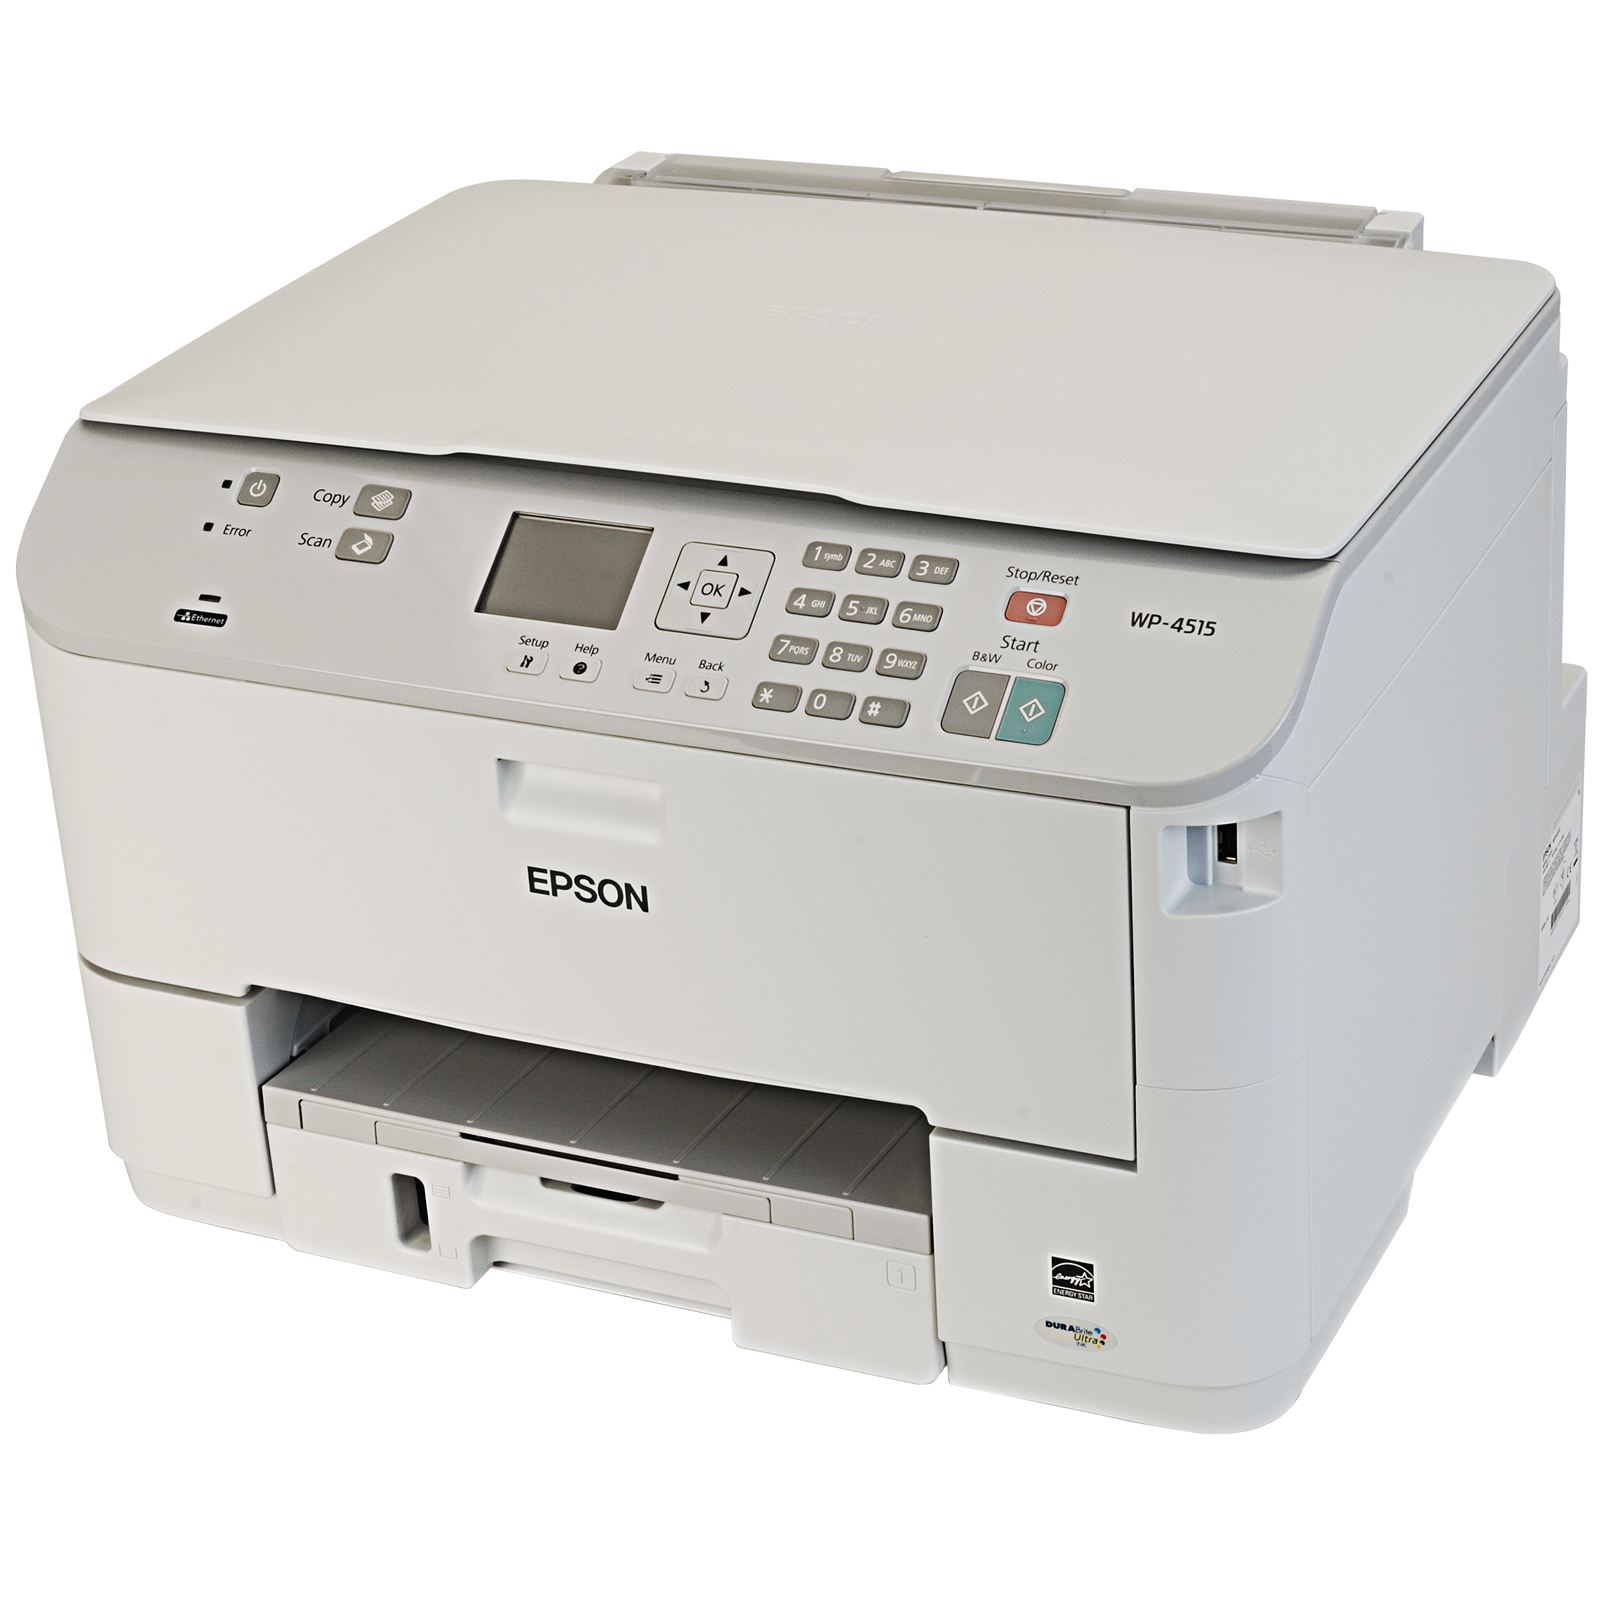 Epson Workforce Pro WP-4515dn